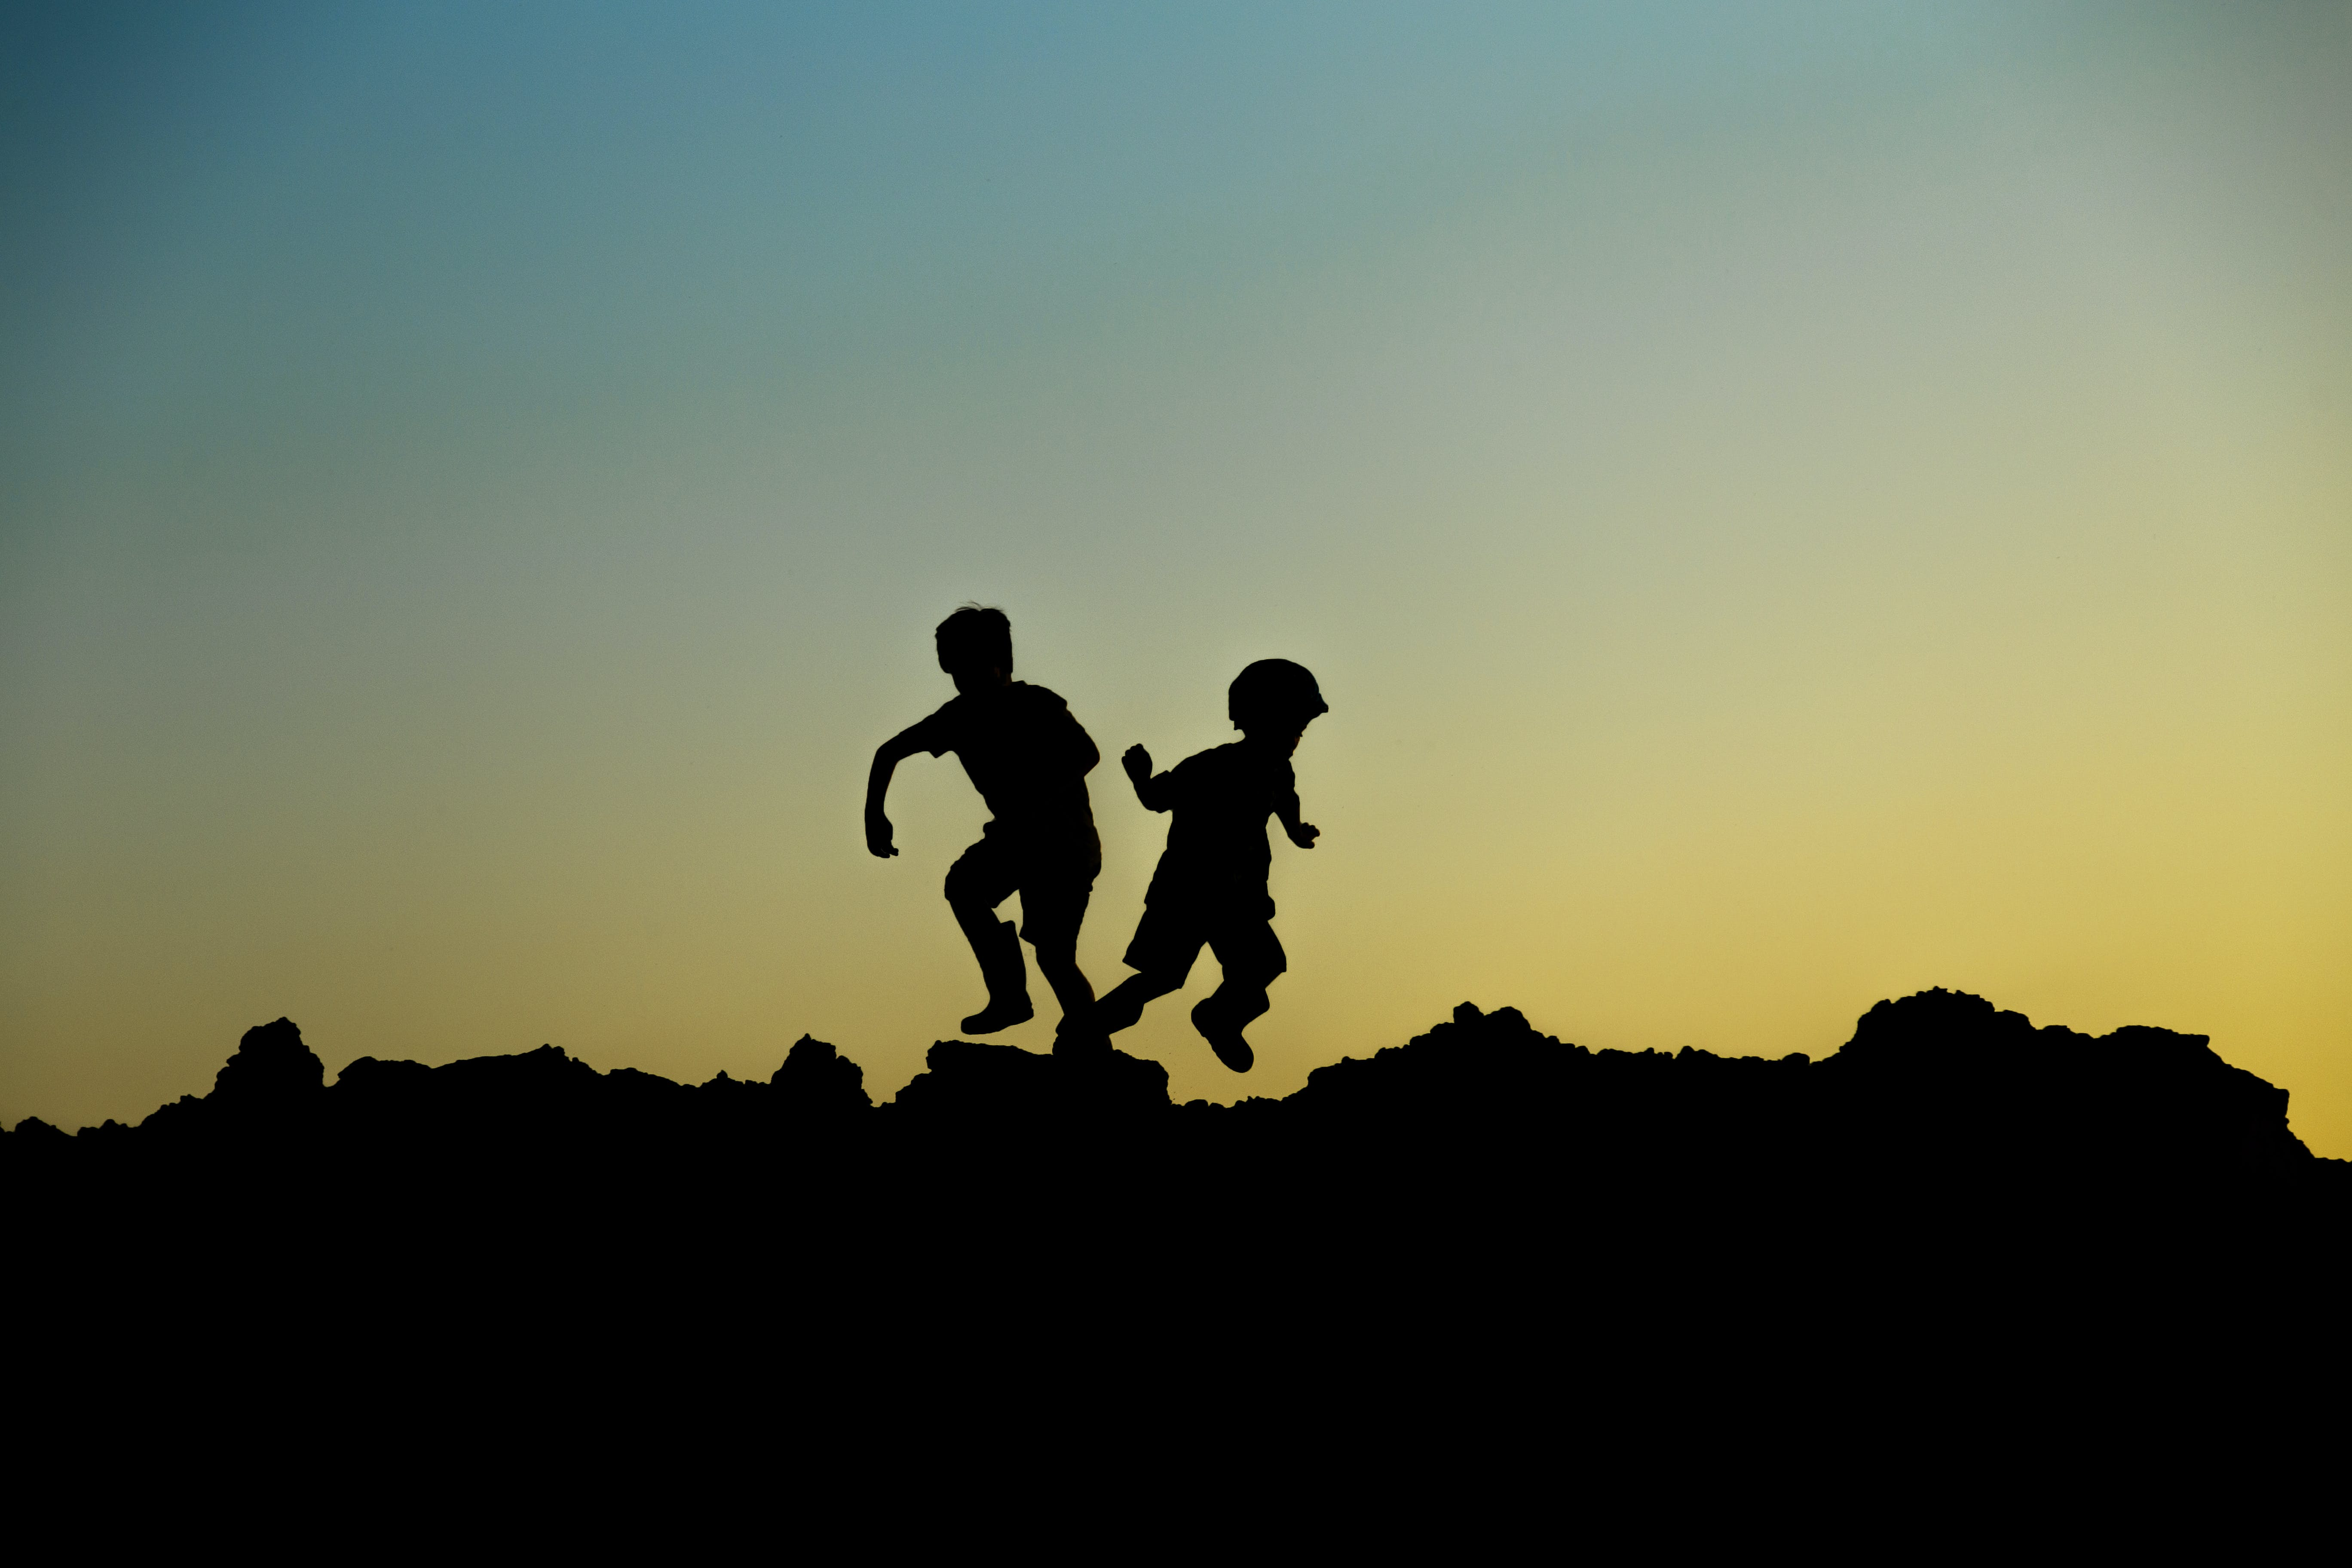 Silhouette Photo of Jumping Children